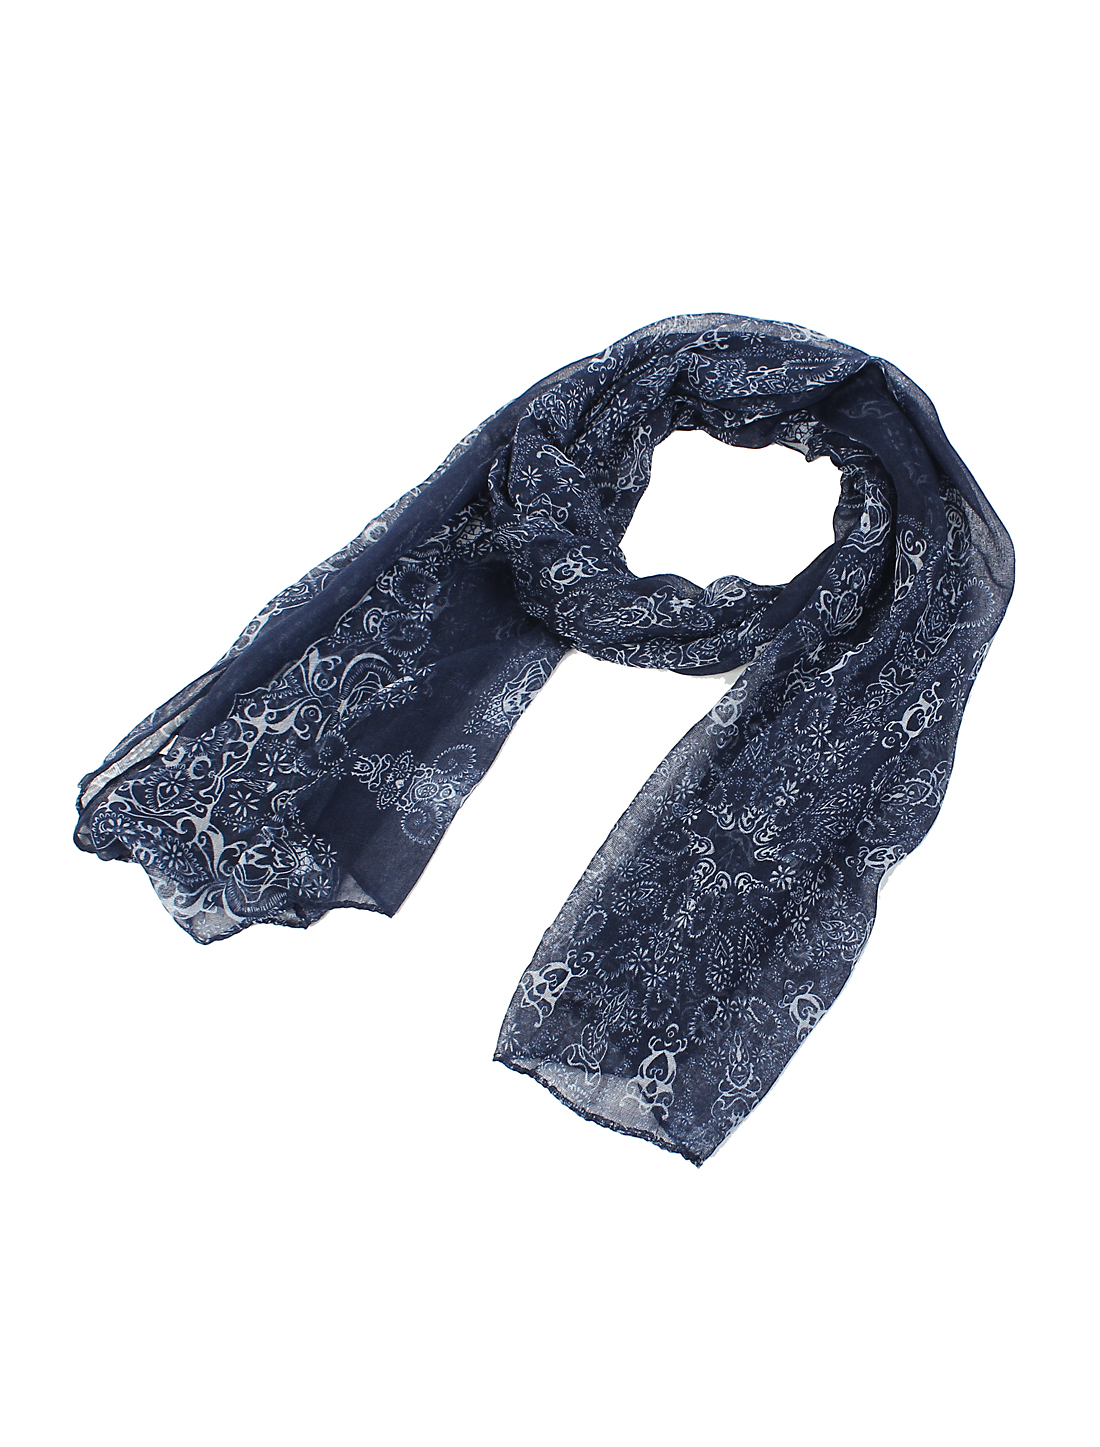 Women Fashion Fabric Chinese Porcelain Print Long Scarf Shawl Wrap Navy Blue